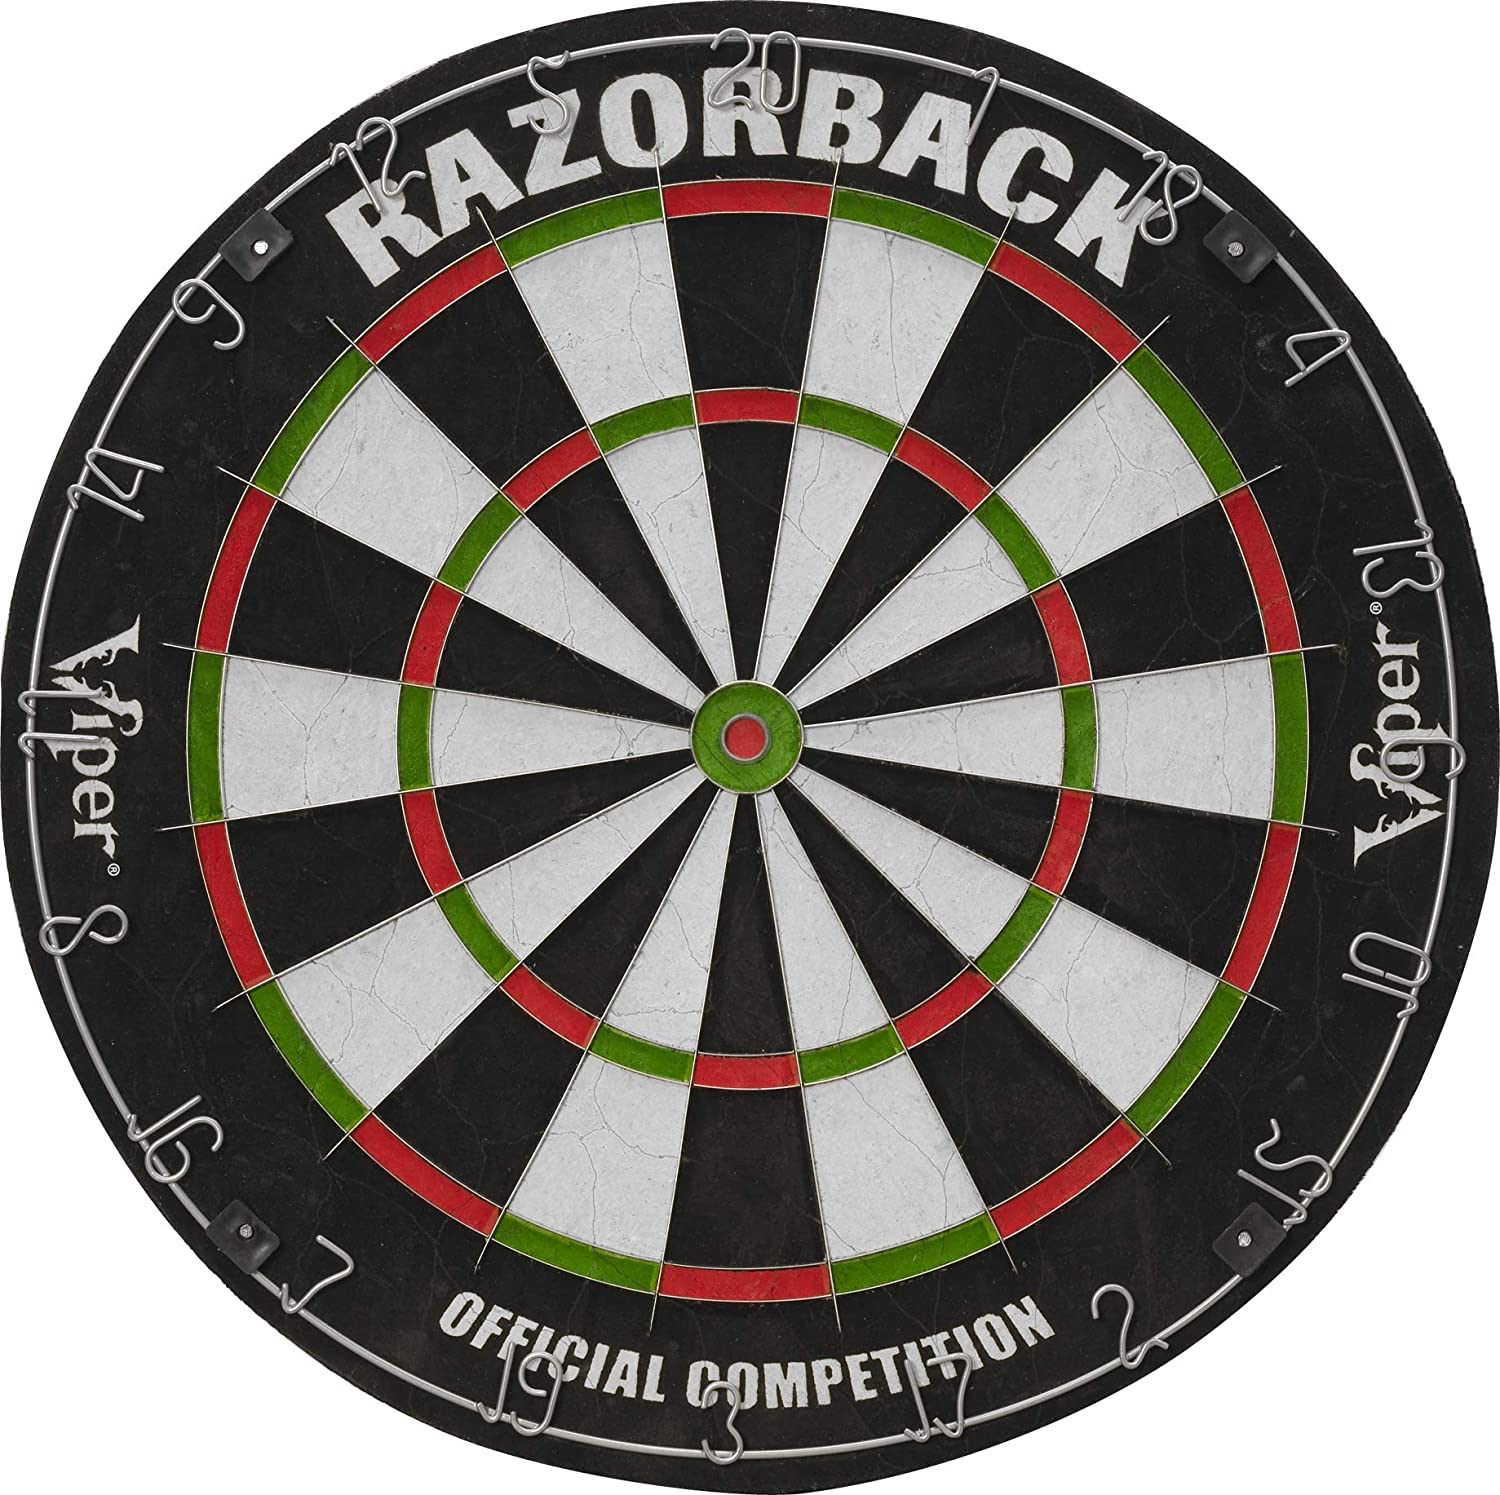 Viper Razorback Official Competition Bristle Steel Tip Dartboard Set with Staple-Free Razor Thin Metal Spider Wire for Increased Scoring, Reduced Bounce Outs; Self-Healing Premium-Grade Sisal Board : Board Games : Sports & Outdoors